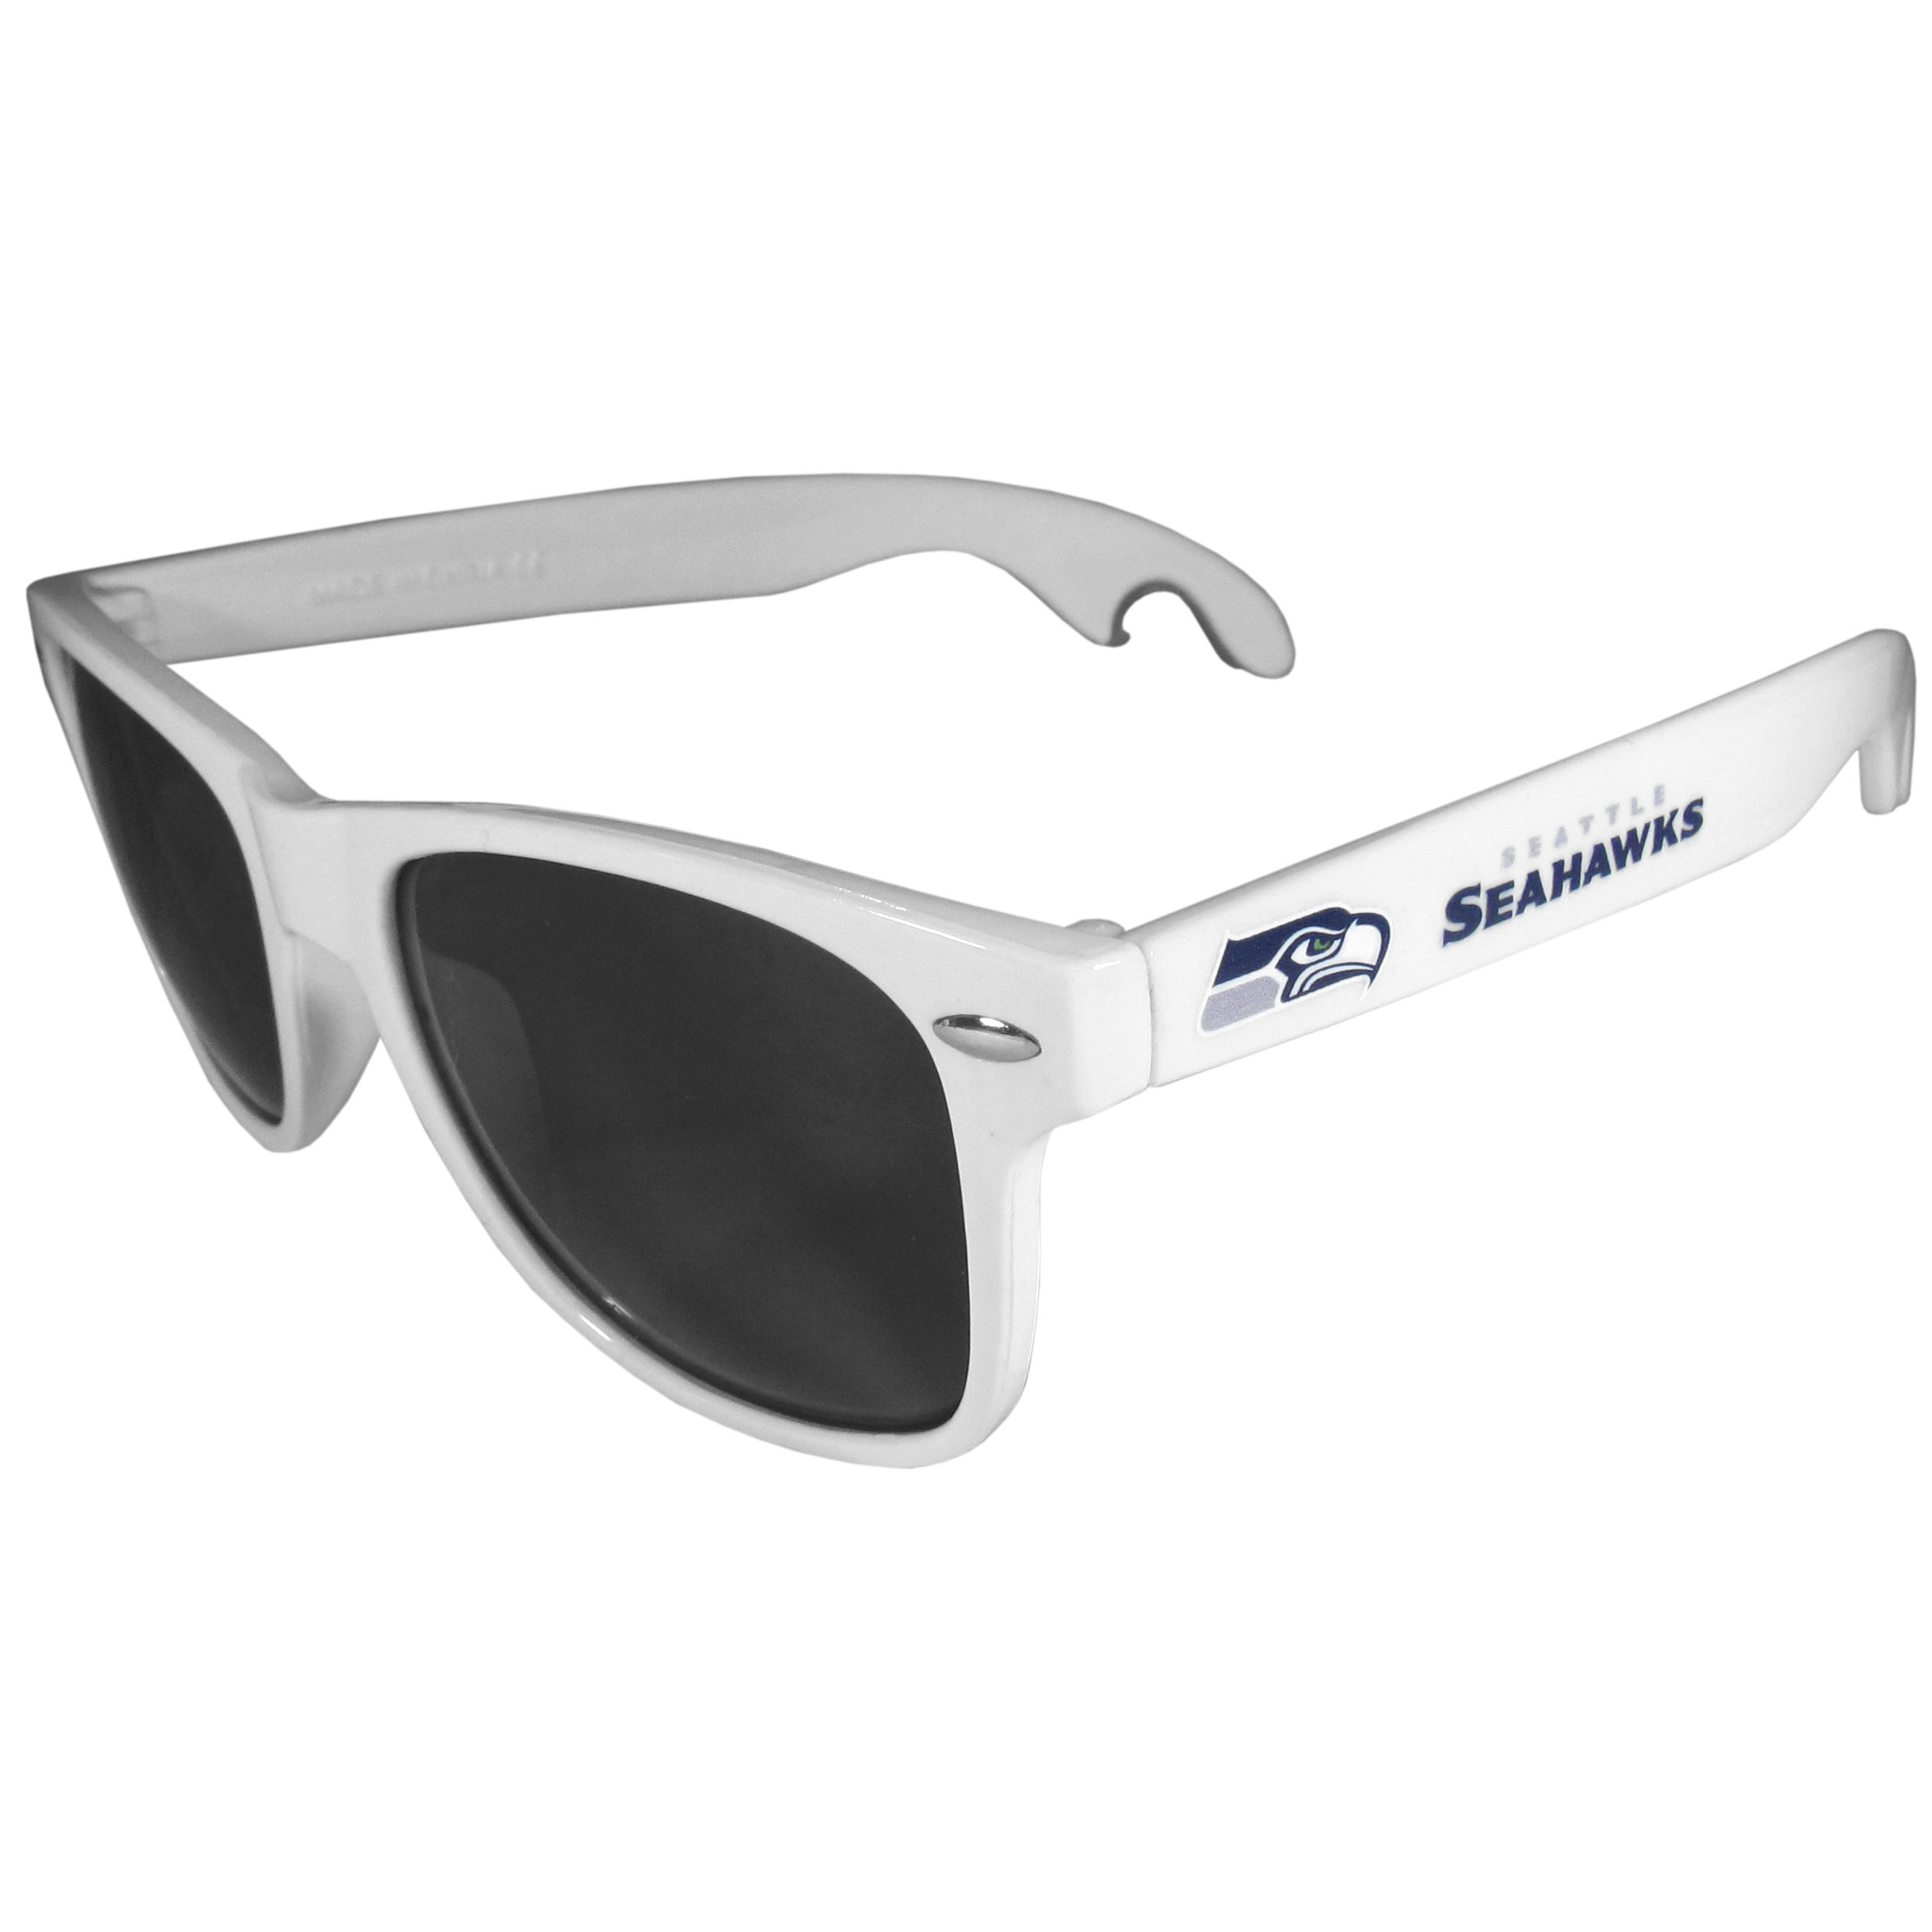 Seattle Seahawks Beachfarer Bottle Opener Sunglasses, White - Seriously, these sunglasses open bottles! Keep the party going with these amazing Seattle Seahawks bottle opener sunglasses. The stylish retro frames feature team designs on the arms and functional bottle openers on the end of the arms. Whether you are at the beach or having a backyard BBQ on game day, these shades will keep your eyes protected with 100% UVA/UVB protection and keep you hydrated with the handy bottle opener arms.